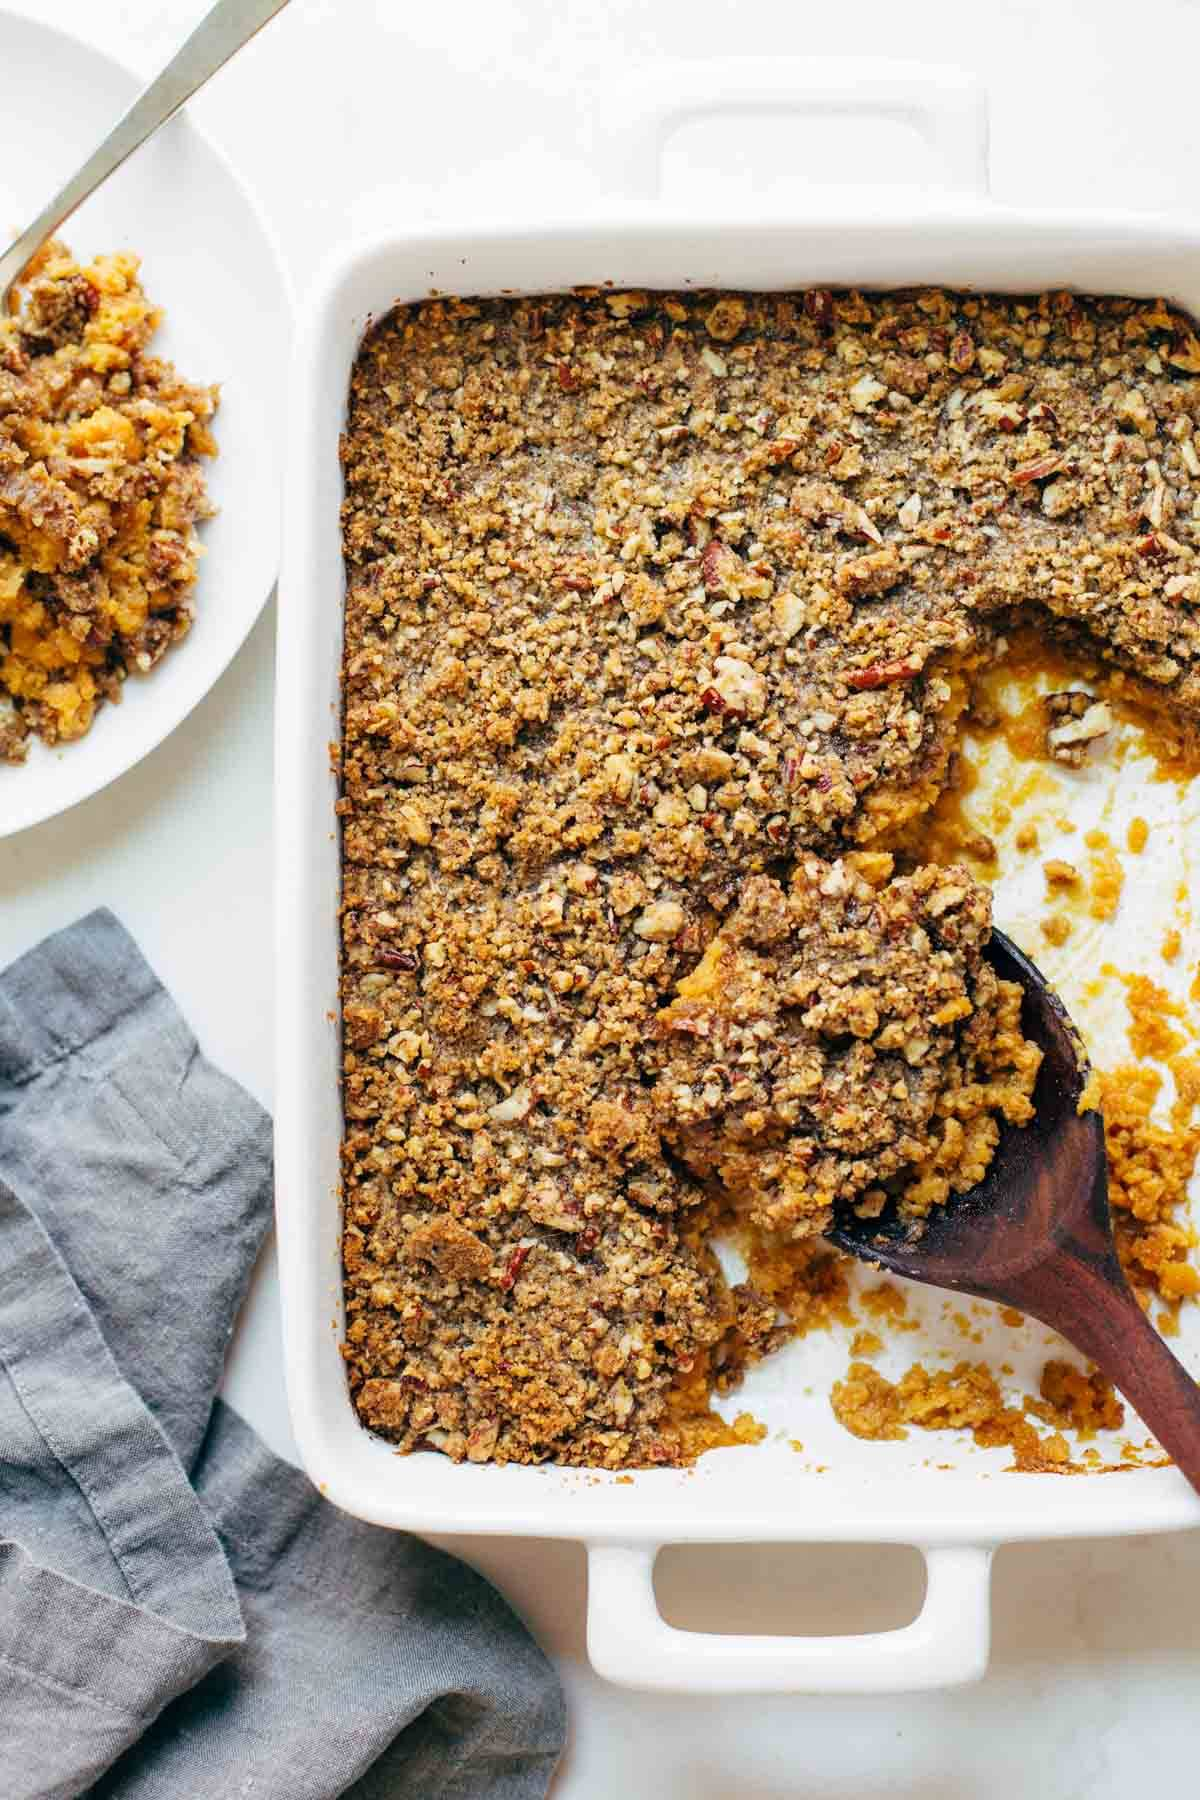 Sweet Potato Casserole in a dish with a wooden spoon